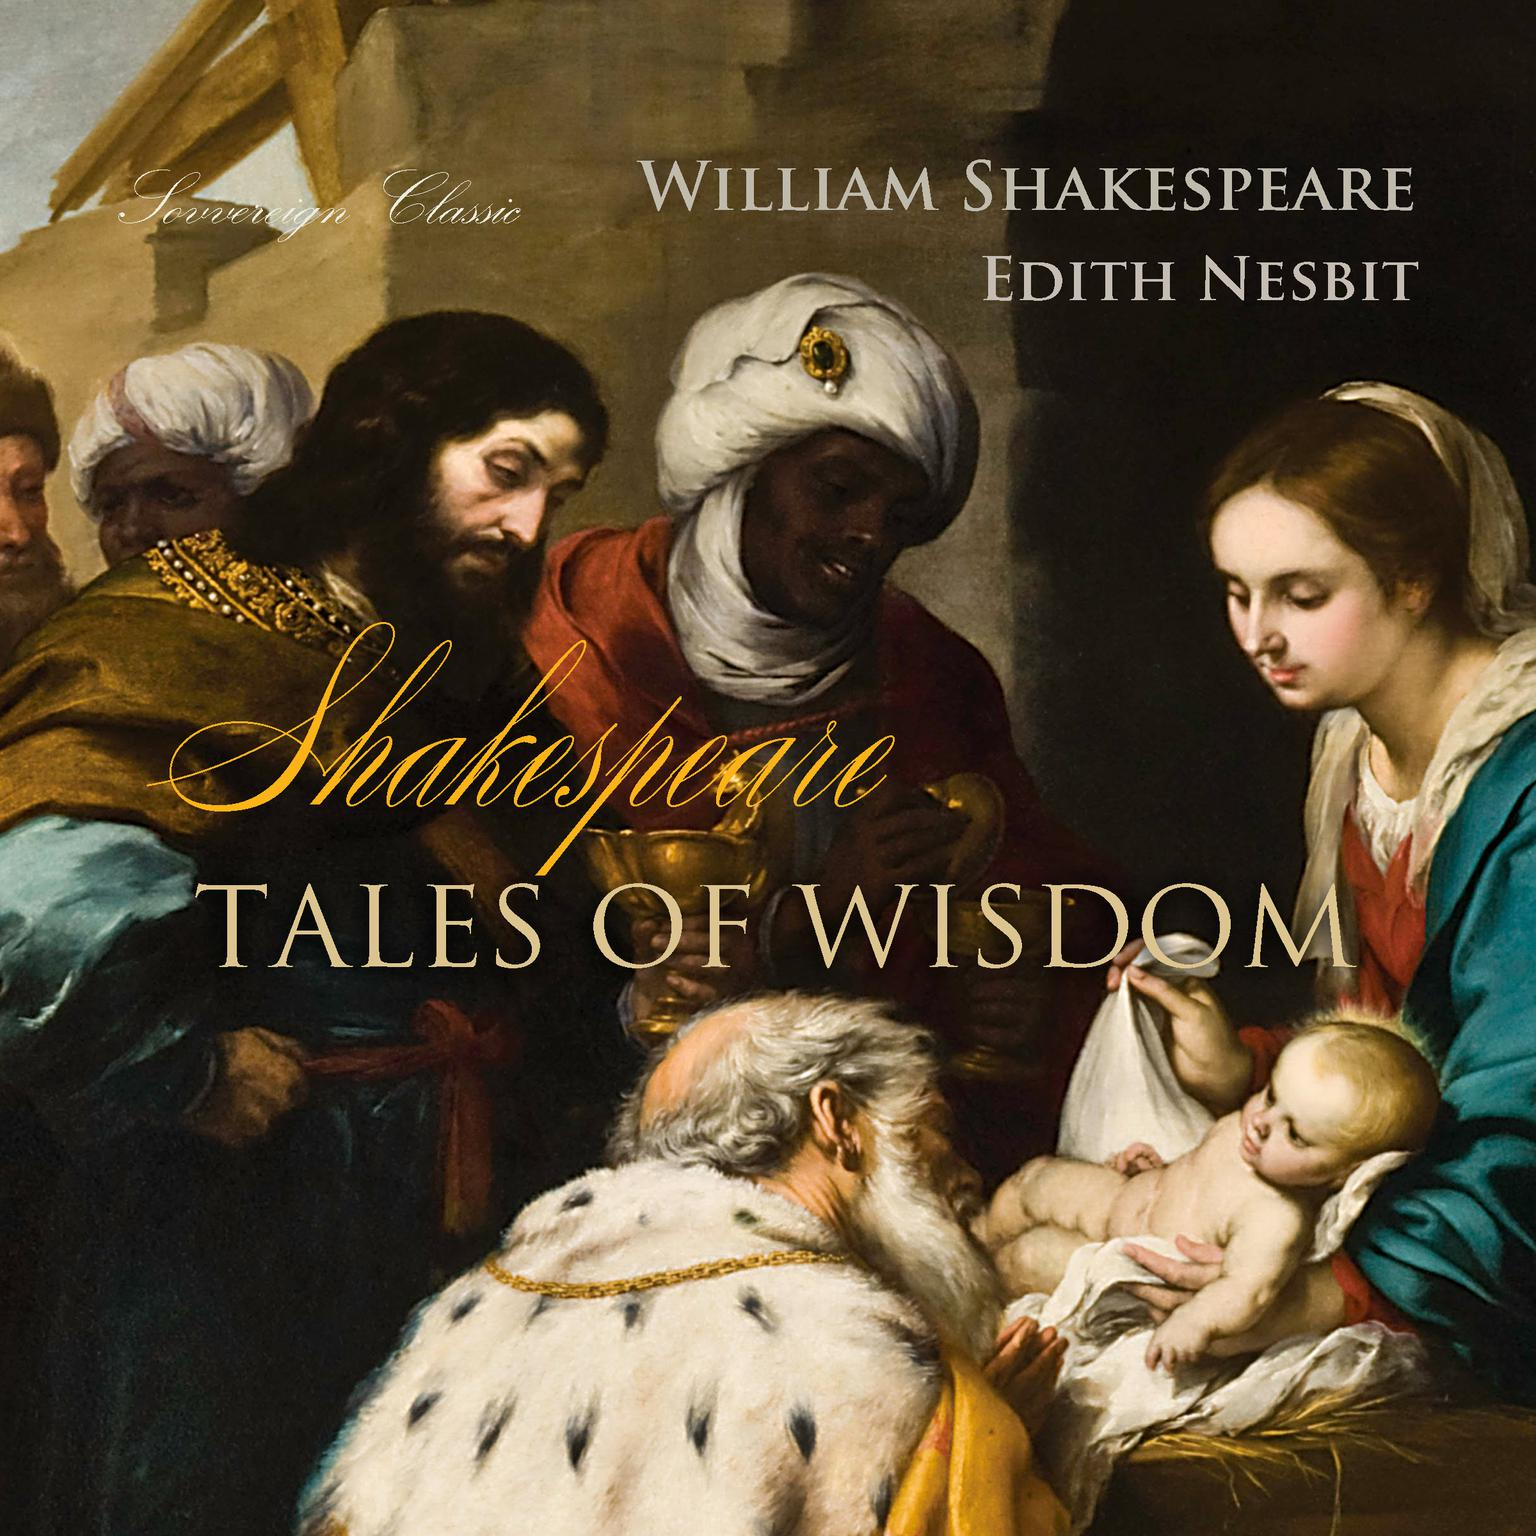 Printable Shakespeare Tales of Wisdom Audiobook Cover Art